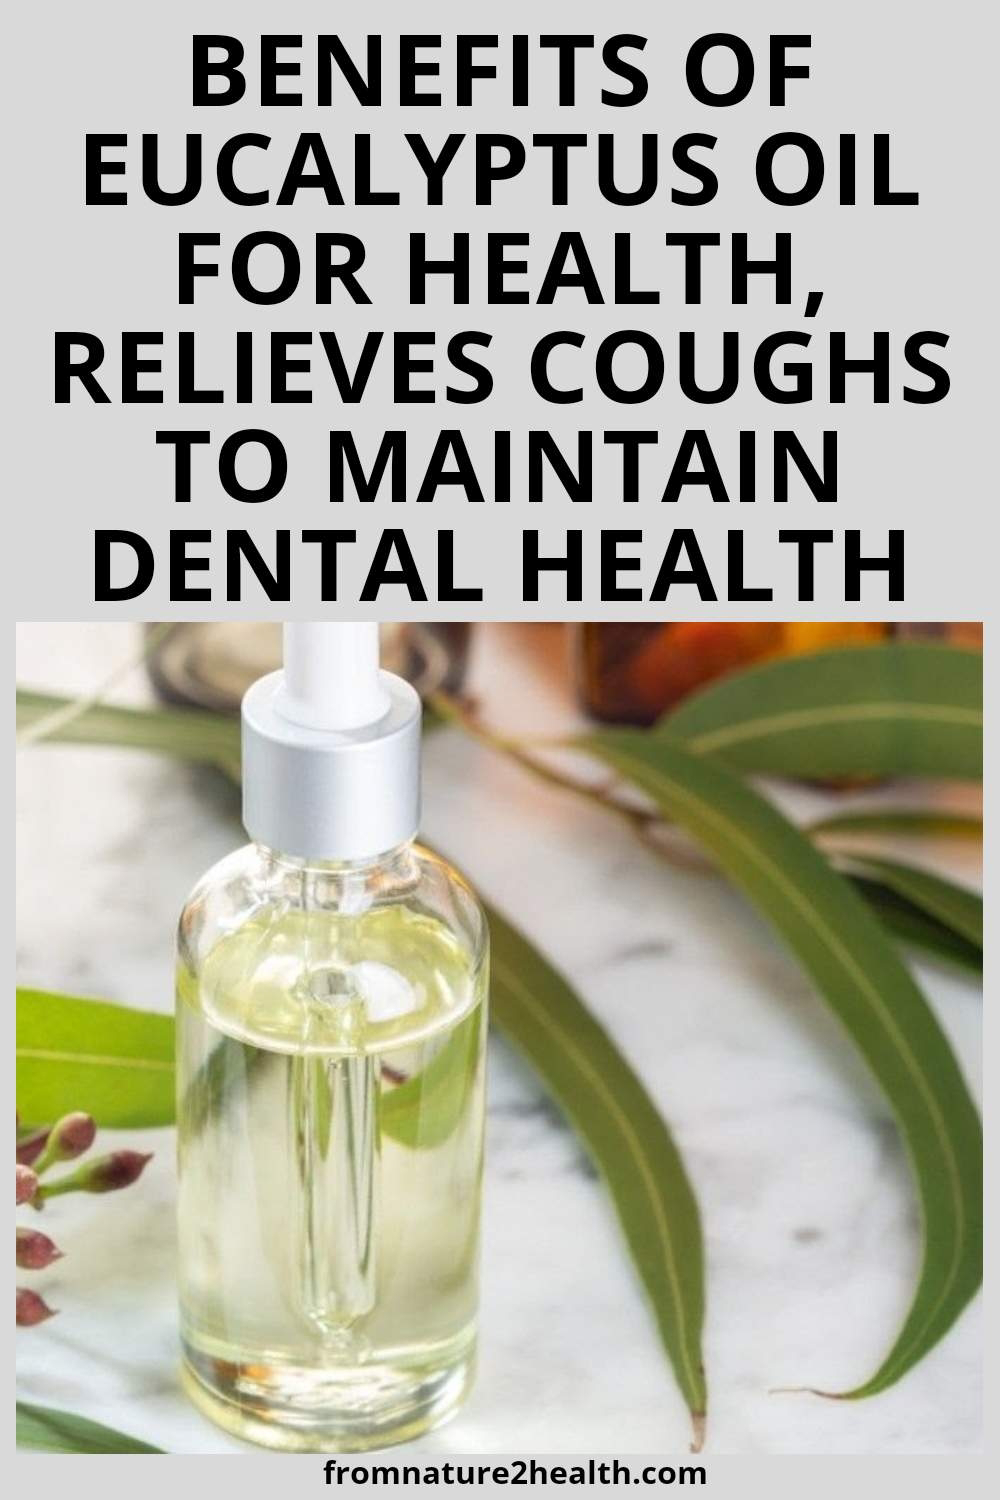 Benefits of Eucalyptus Oil for Health, Relieves Coughs to Maintain Dental Health